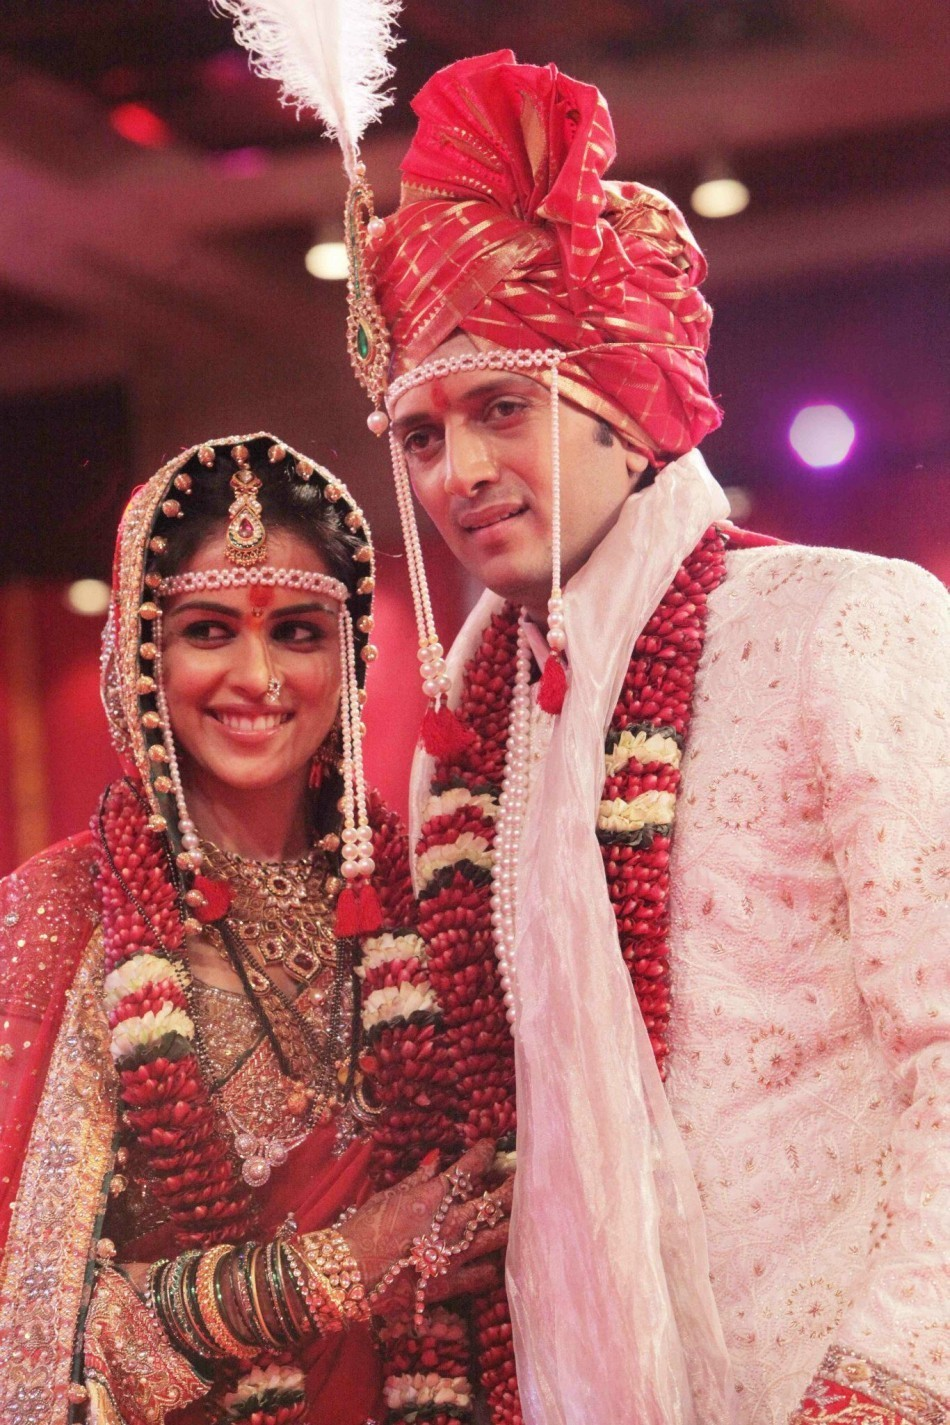 2. Riteish Deshmukh and Genelia D'Souza